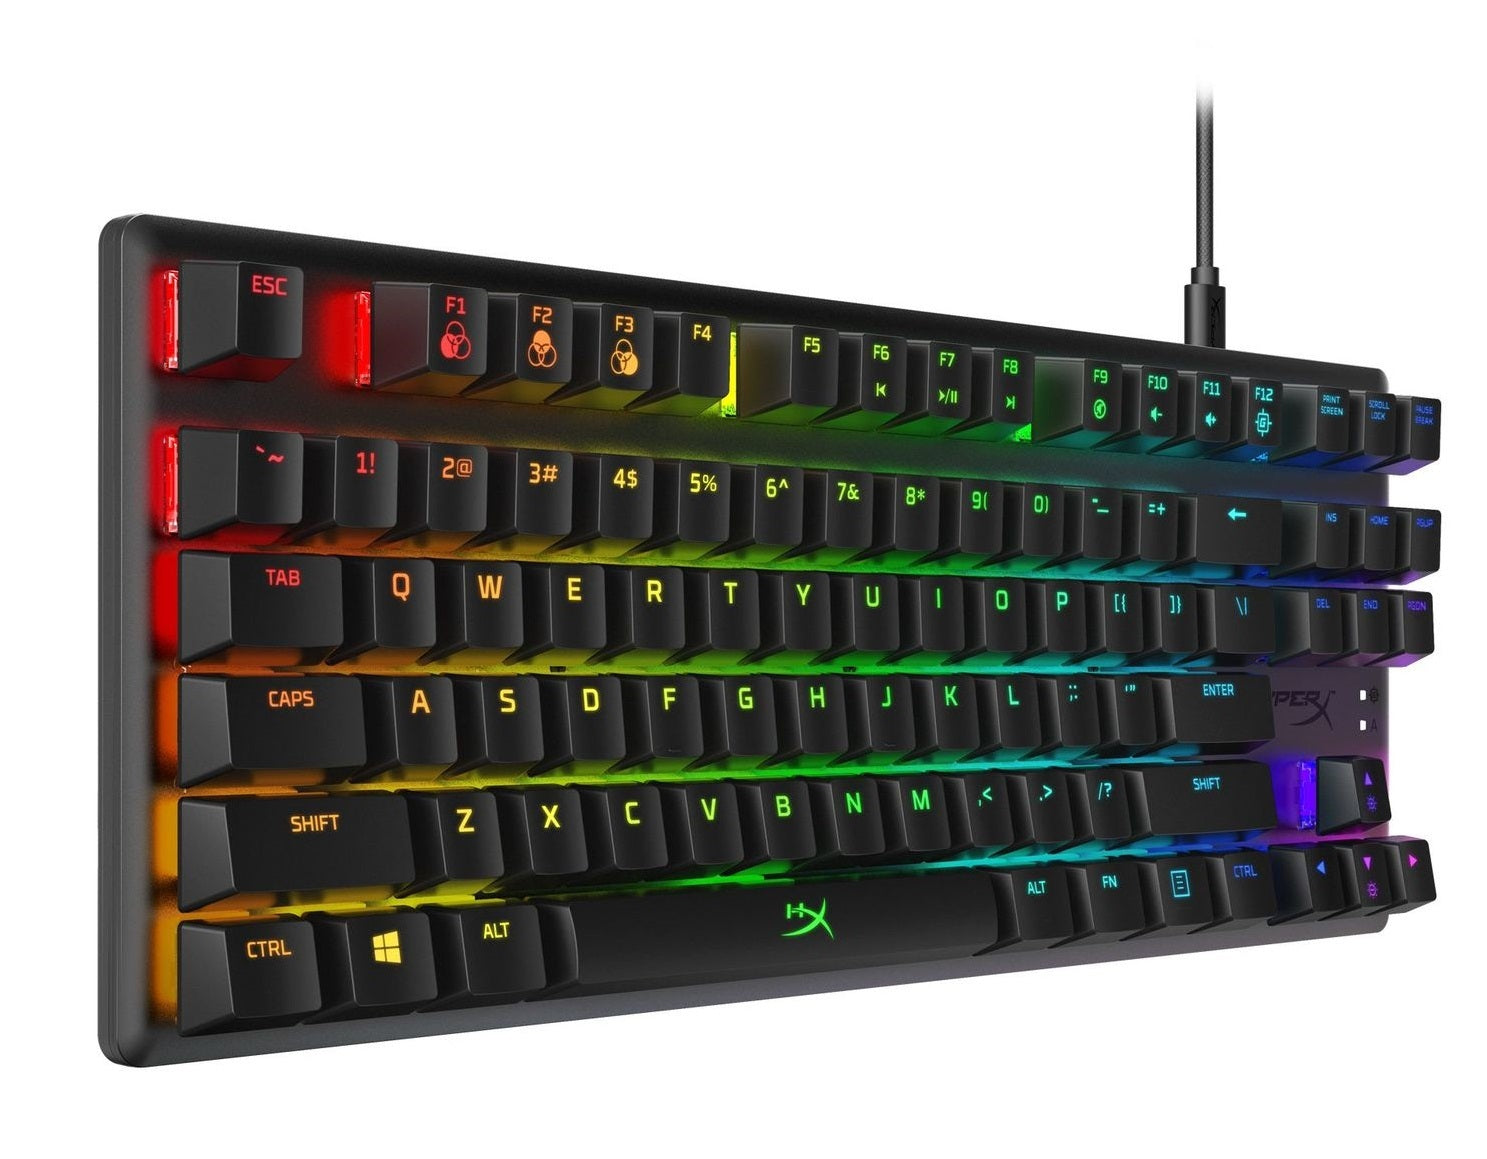 HyperX Alloy Origins CORE RGB Mechanical Gaming Keyboard (HyperX Blue Switches) - PC Games